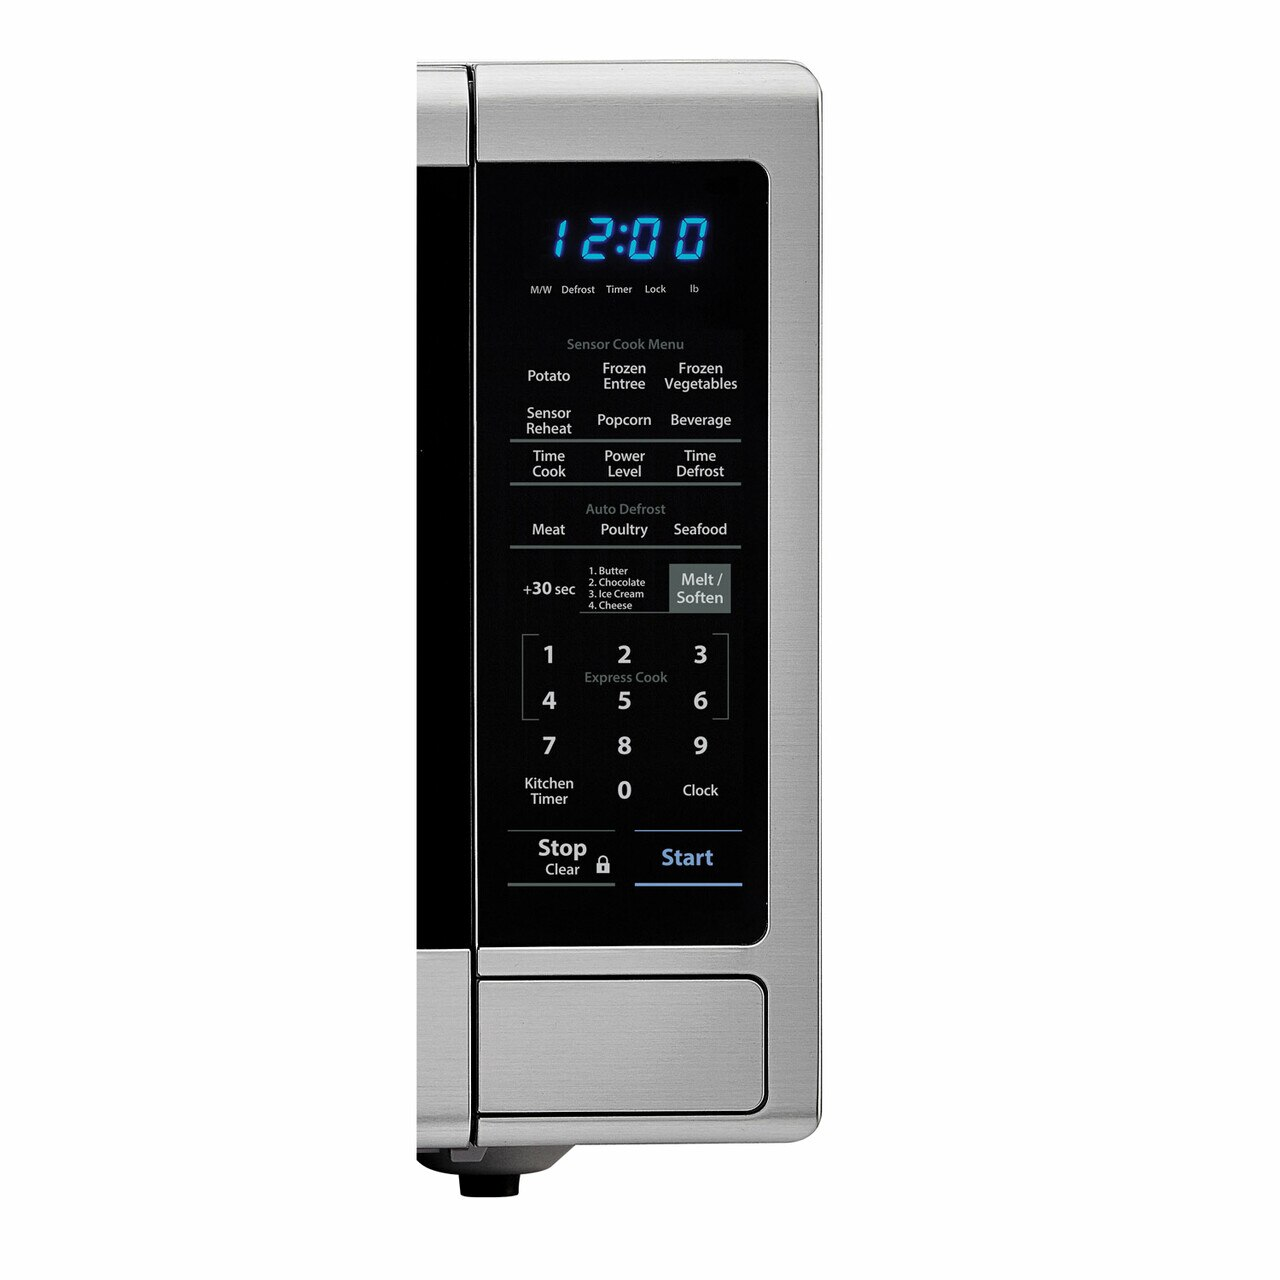 1.8 cu. ft. Sharp Stainless Steel Countertop Microwave (SMC1842CS) – control panel